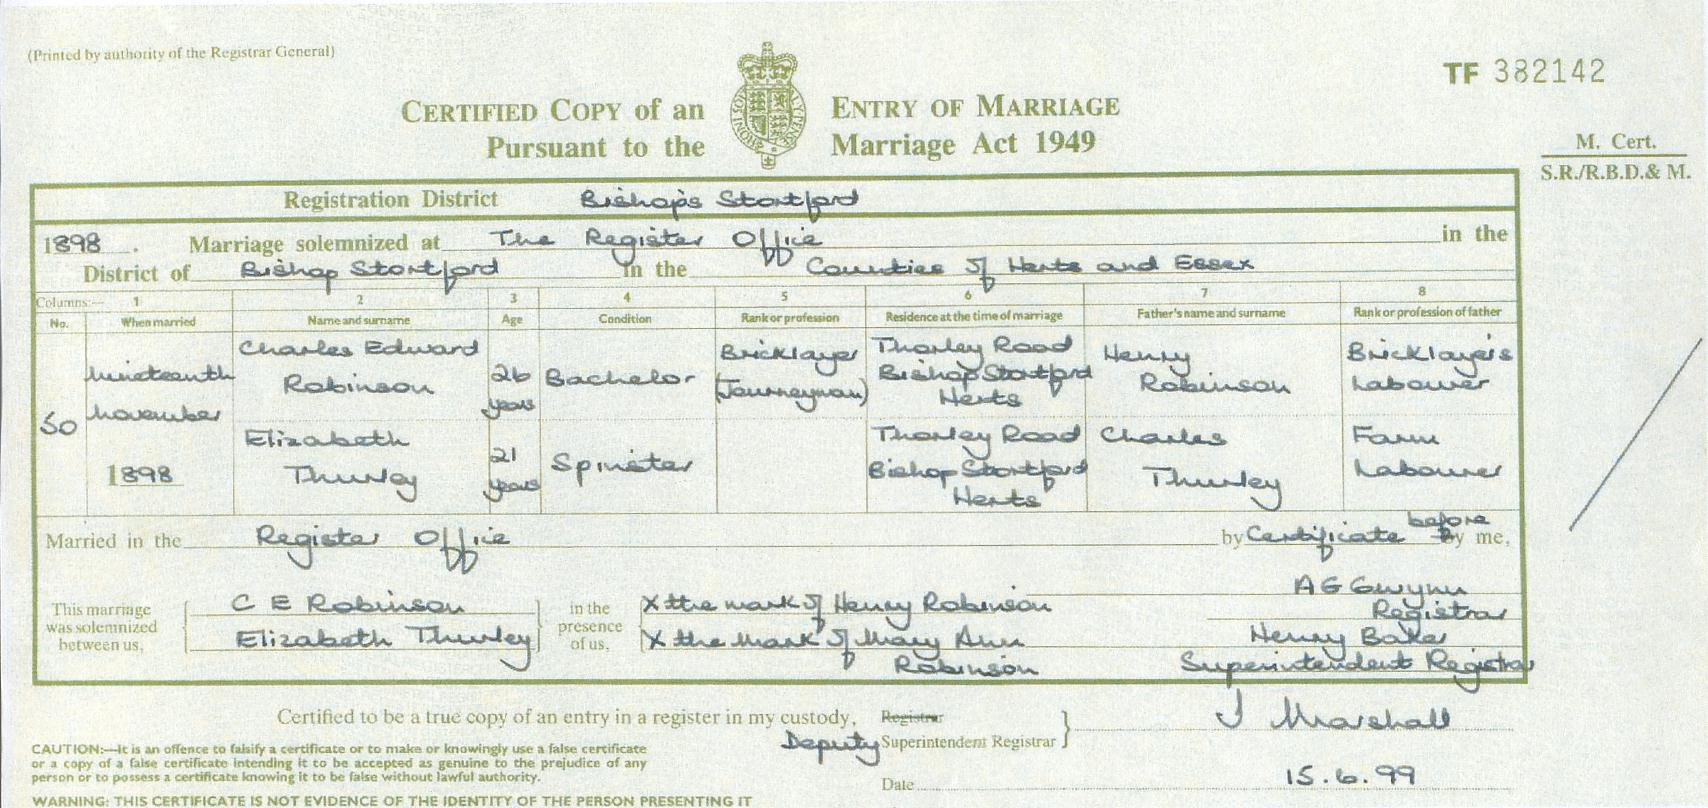 Thurleyyule surname research bmd bmd marriage of charles edward robinson and elizabeth thurley 19 november 1898 bishops stortford hertfordshire england aiddatafo Choice Image